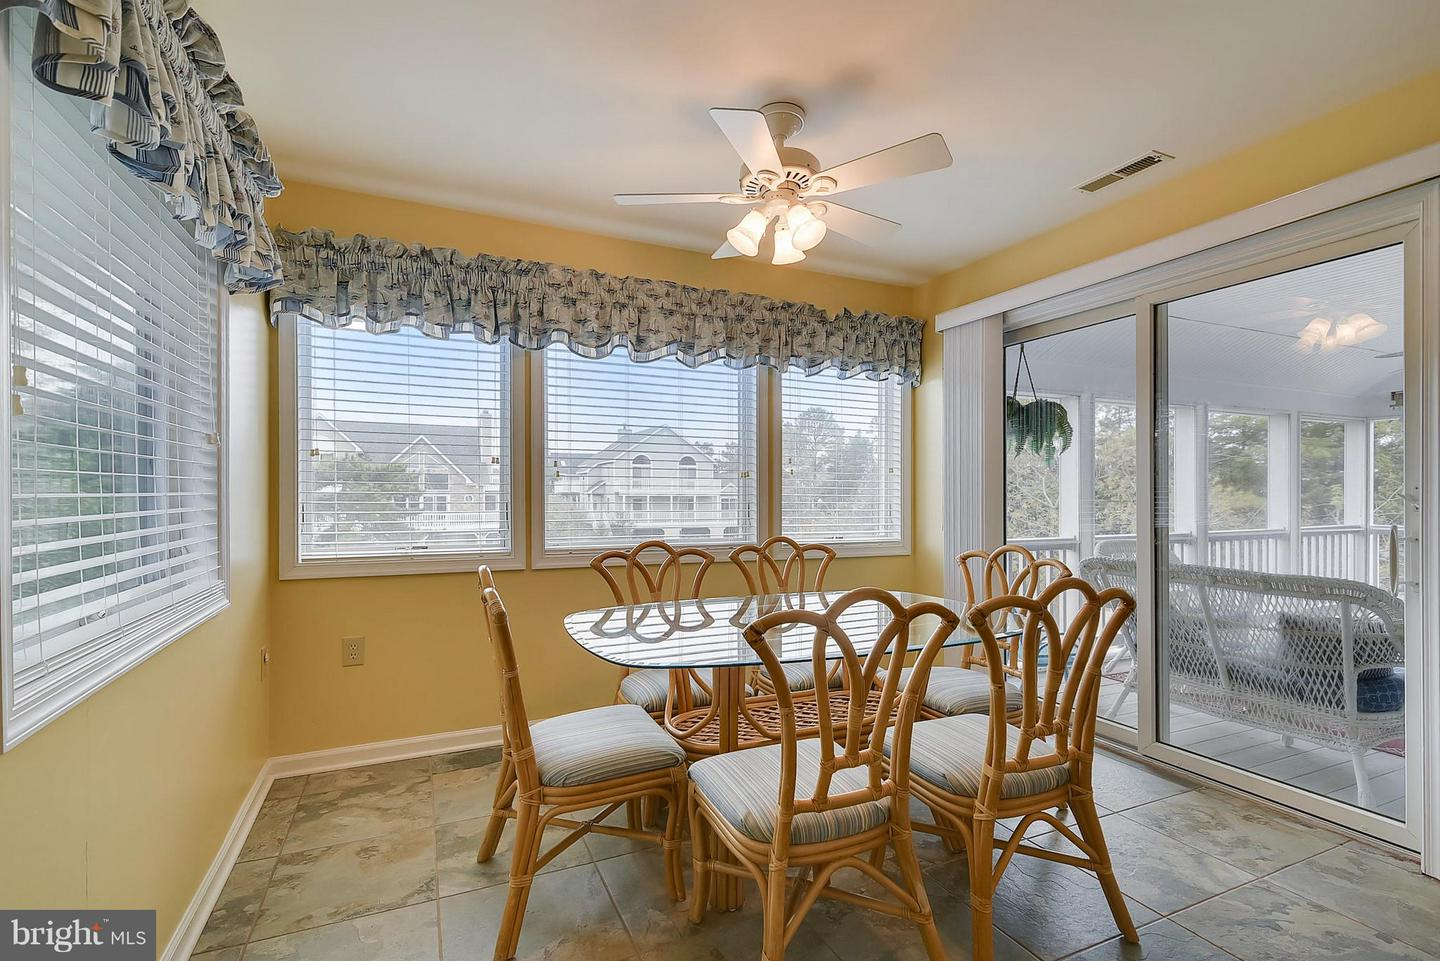 1002344128-300986986341-2018-11-07-14-16-58 39634 Seatrout Cir | North Bethany, DE Real Estate For Sale | MLS# 1002344128  - 1st Choice Properties